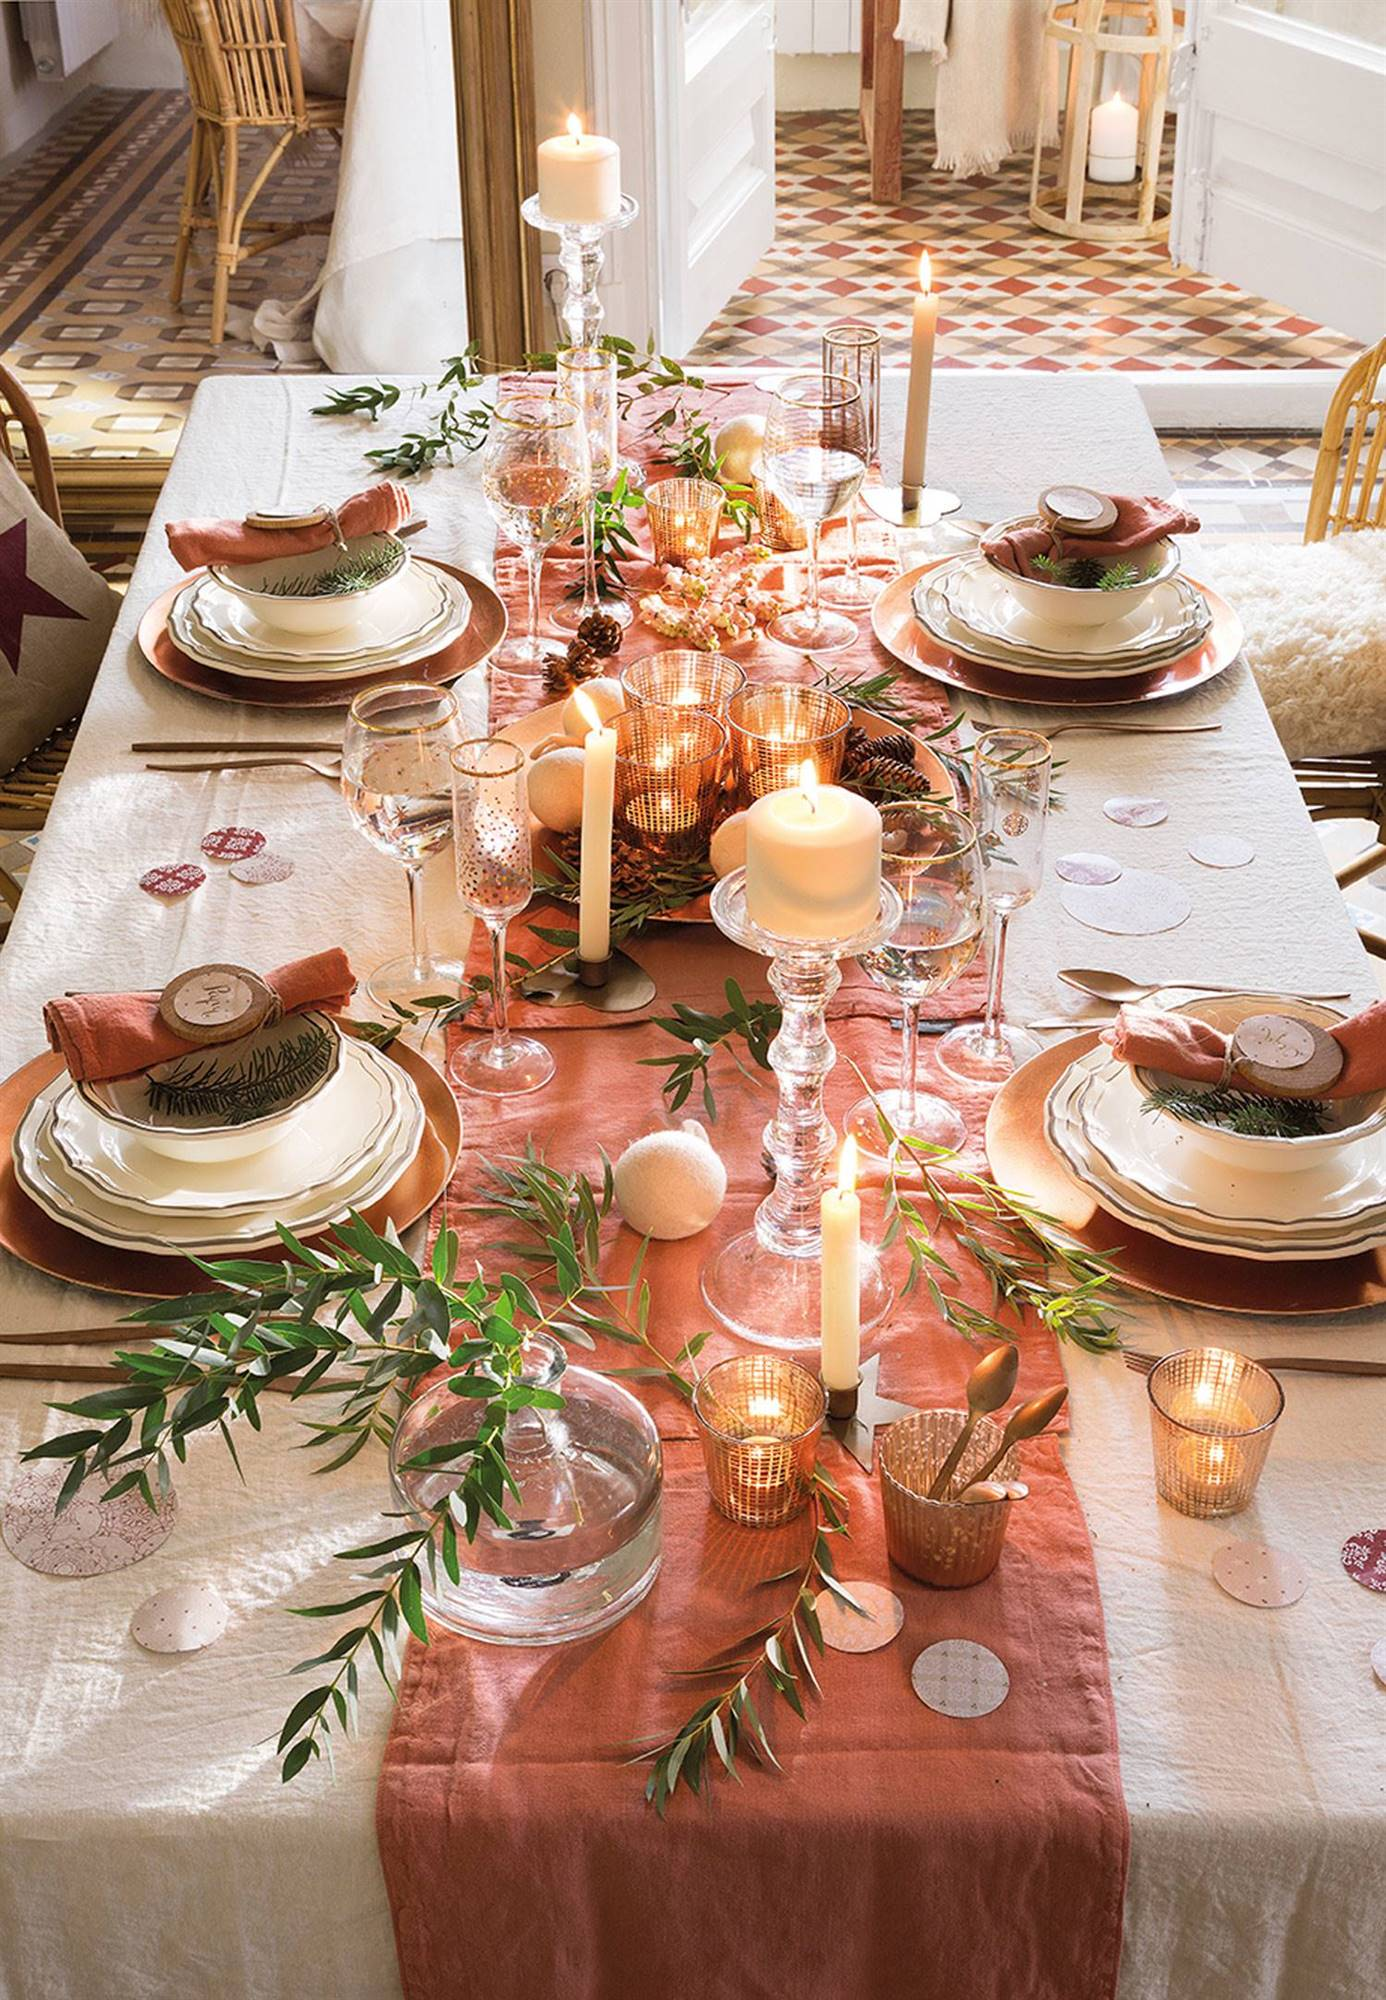 00444854 cadbb956 1386x2000 - Tips to decorate the table at Christmas